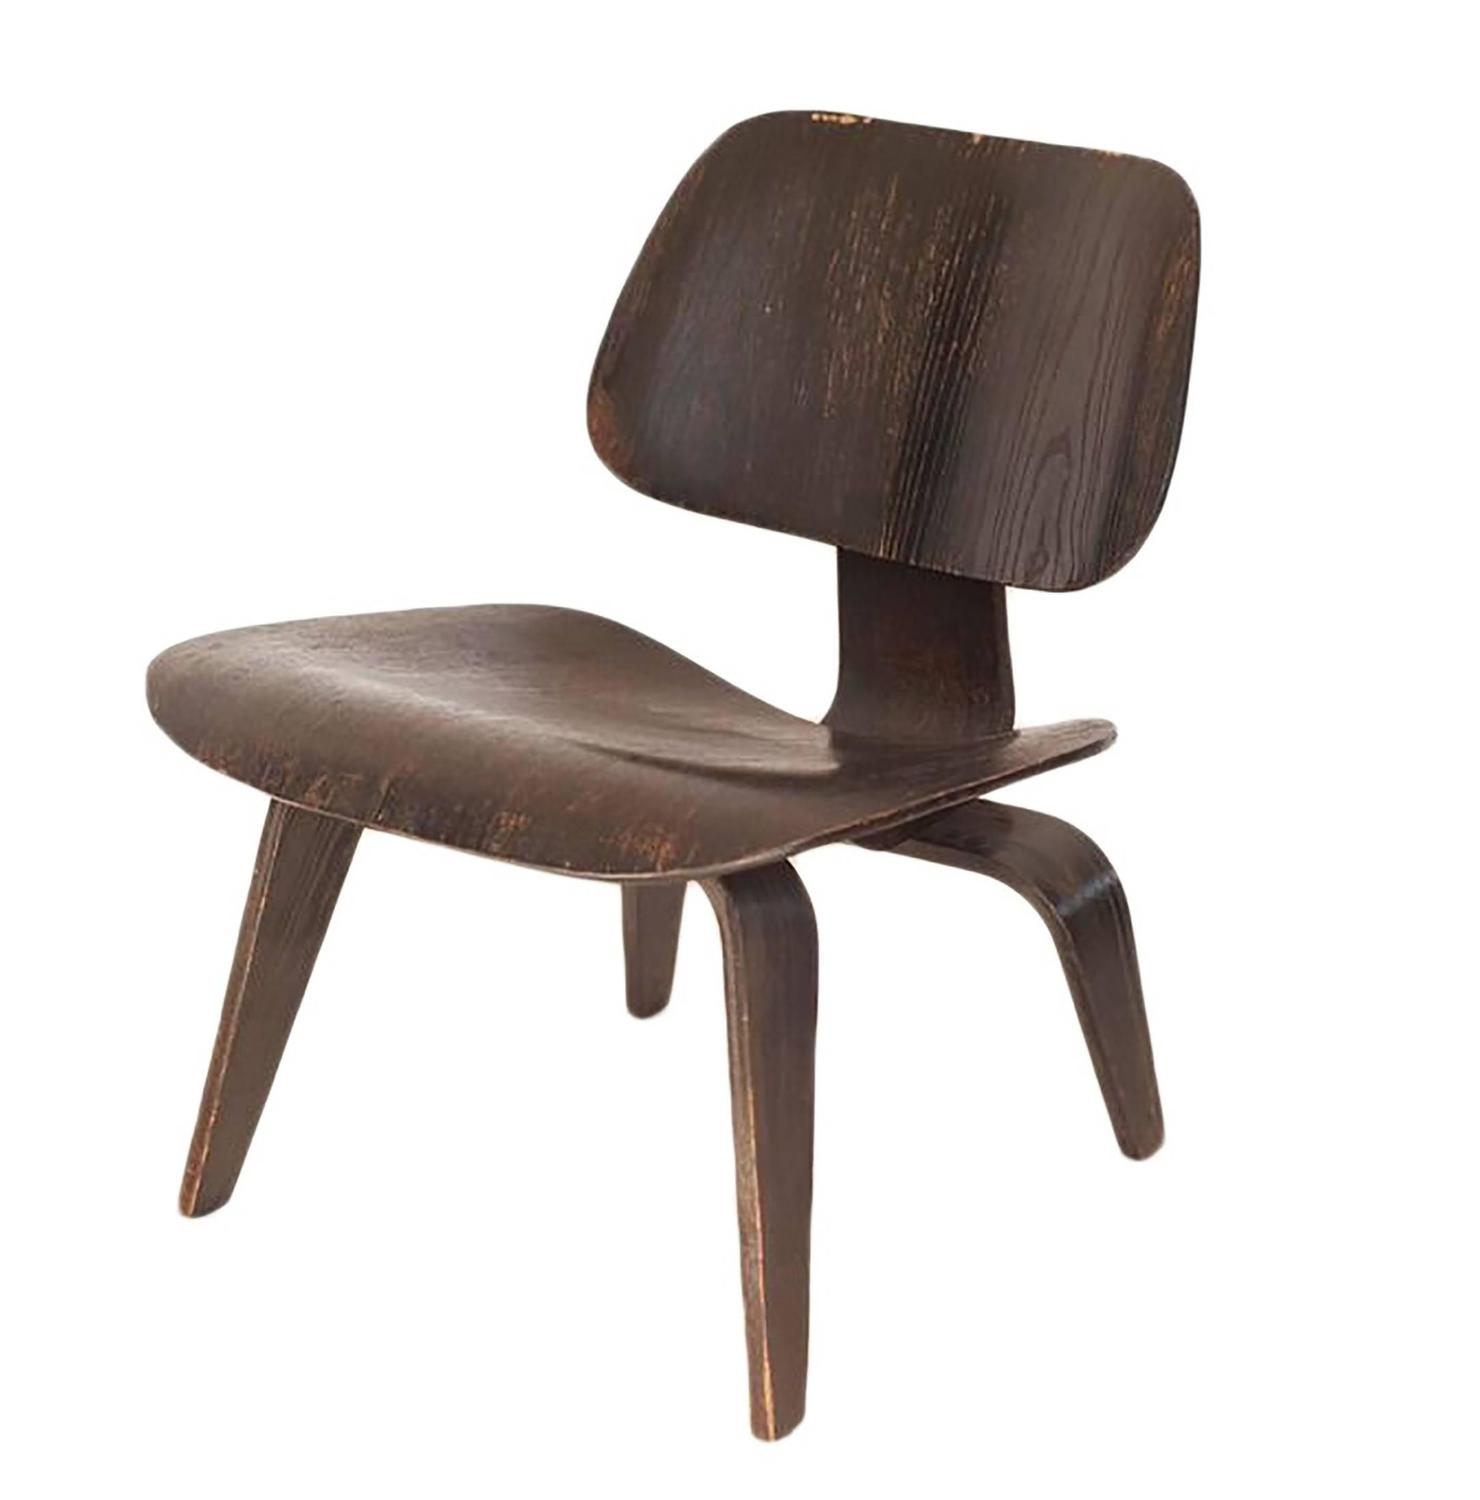 Herman Miller 1951 LCW by Charles and Ray Eames at 1stdibs